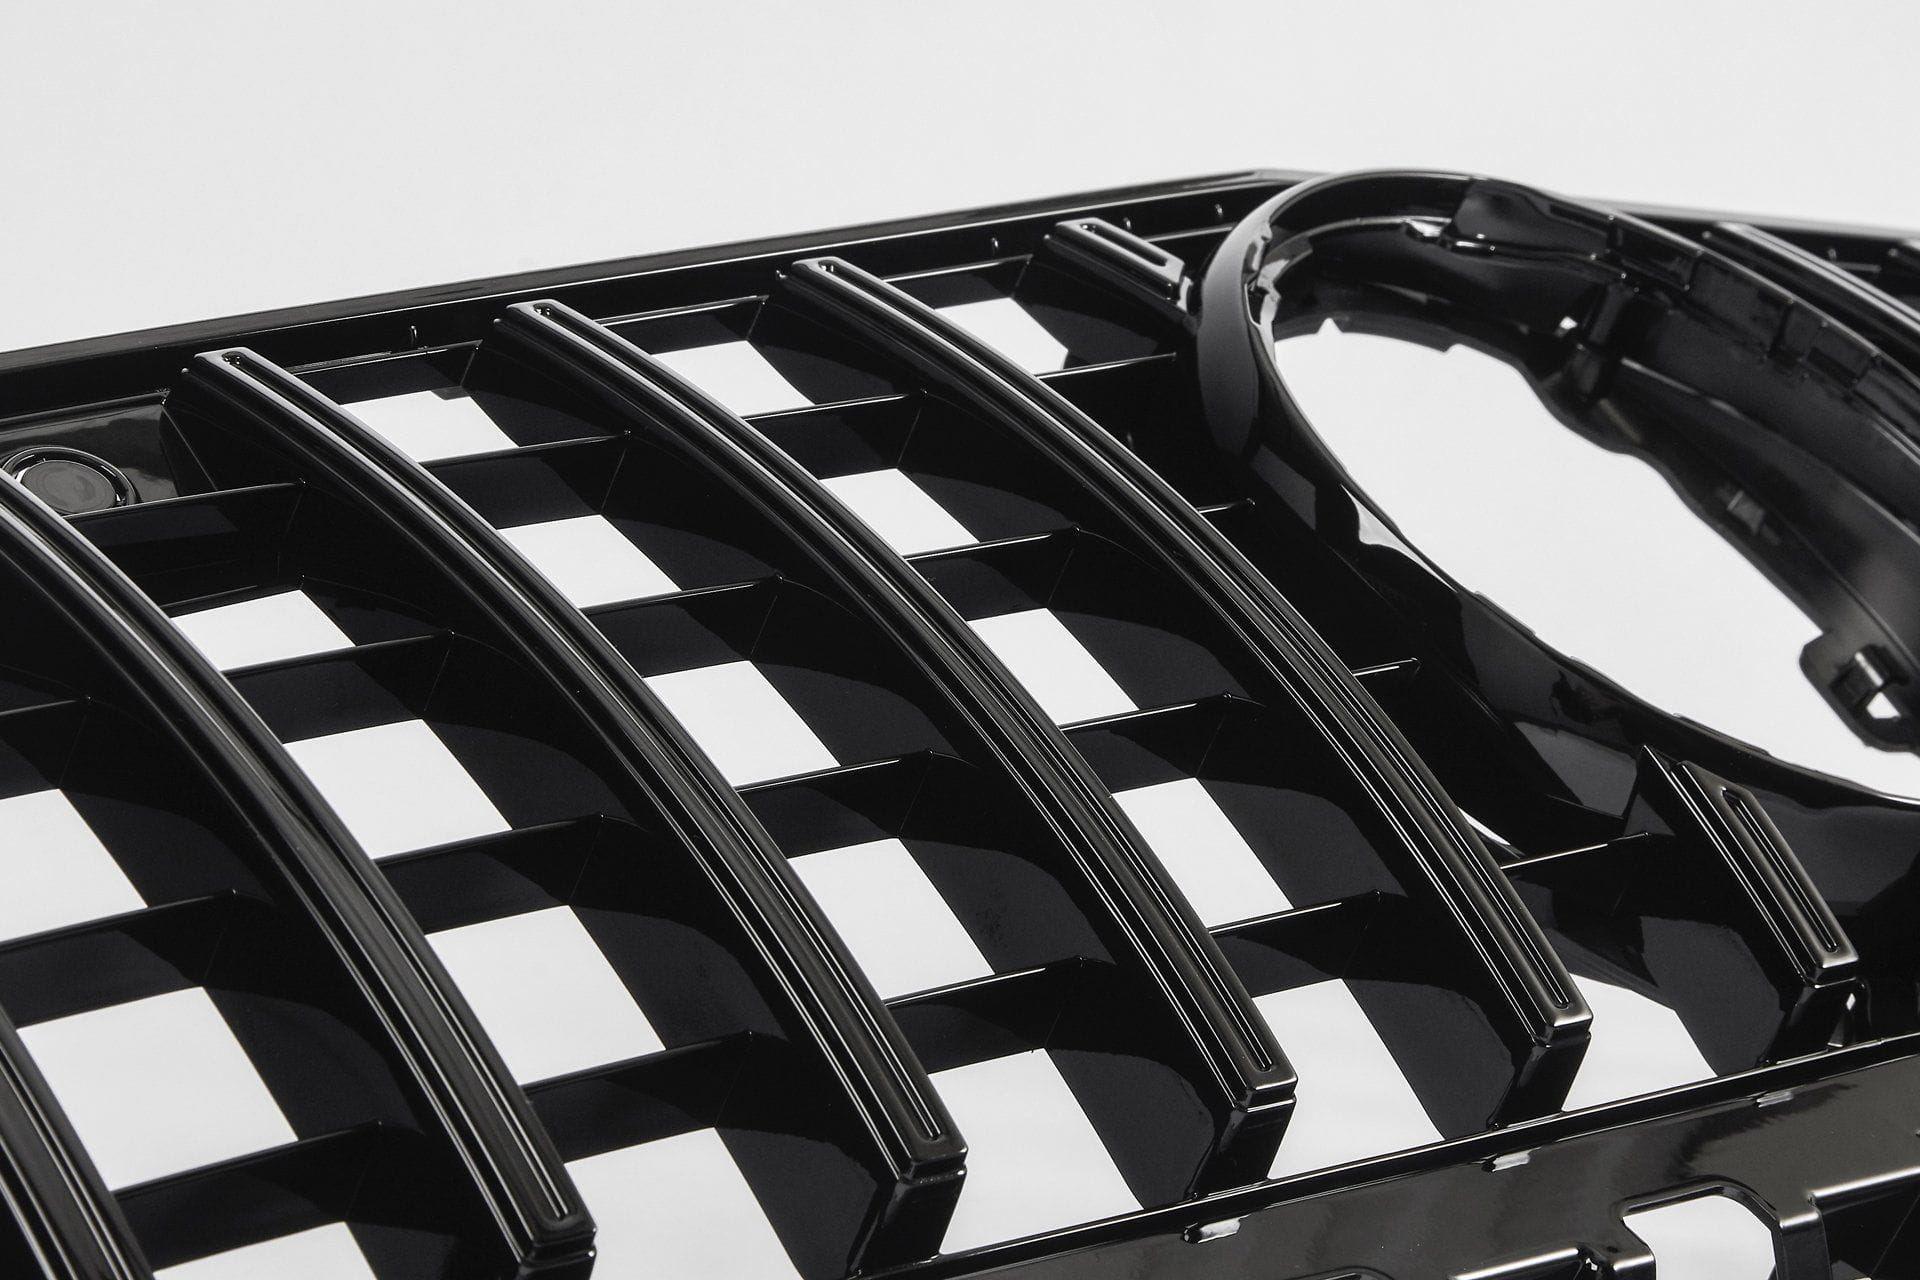 Mercedes-Benz A-Class Panamericana GTR Style Grille (W177 with camera)